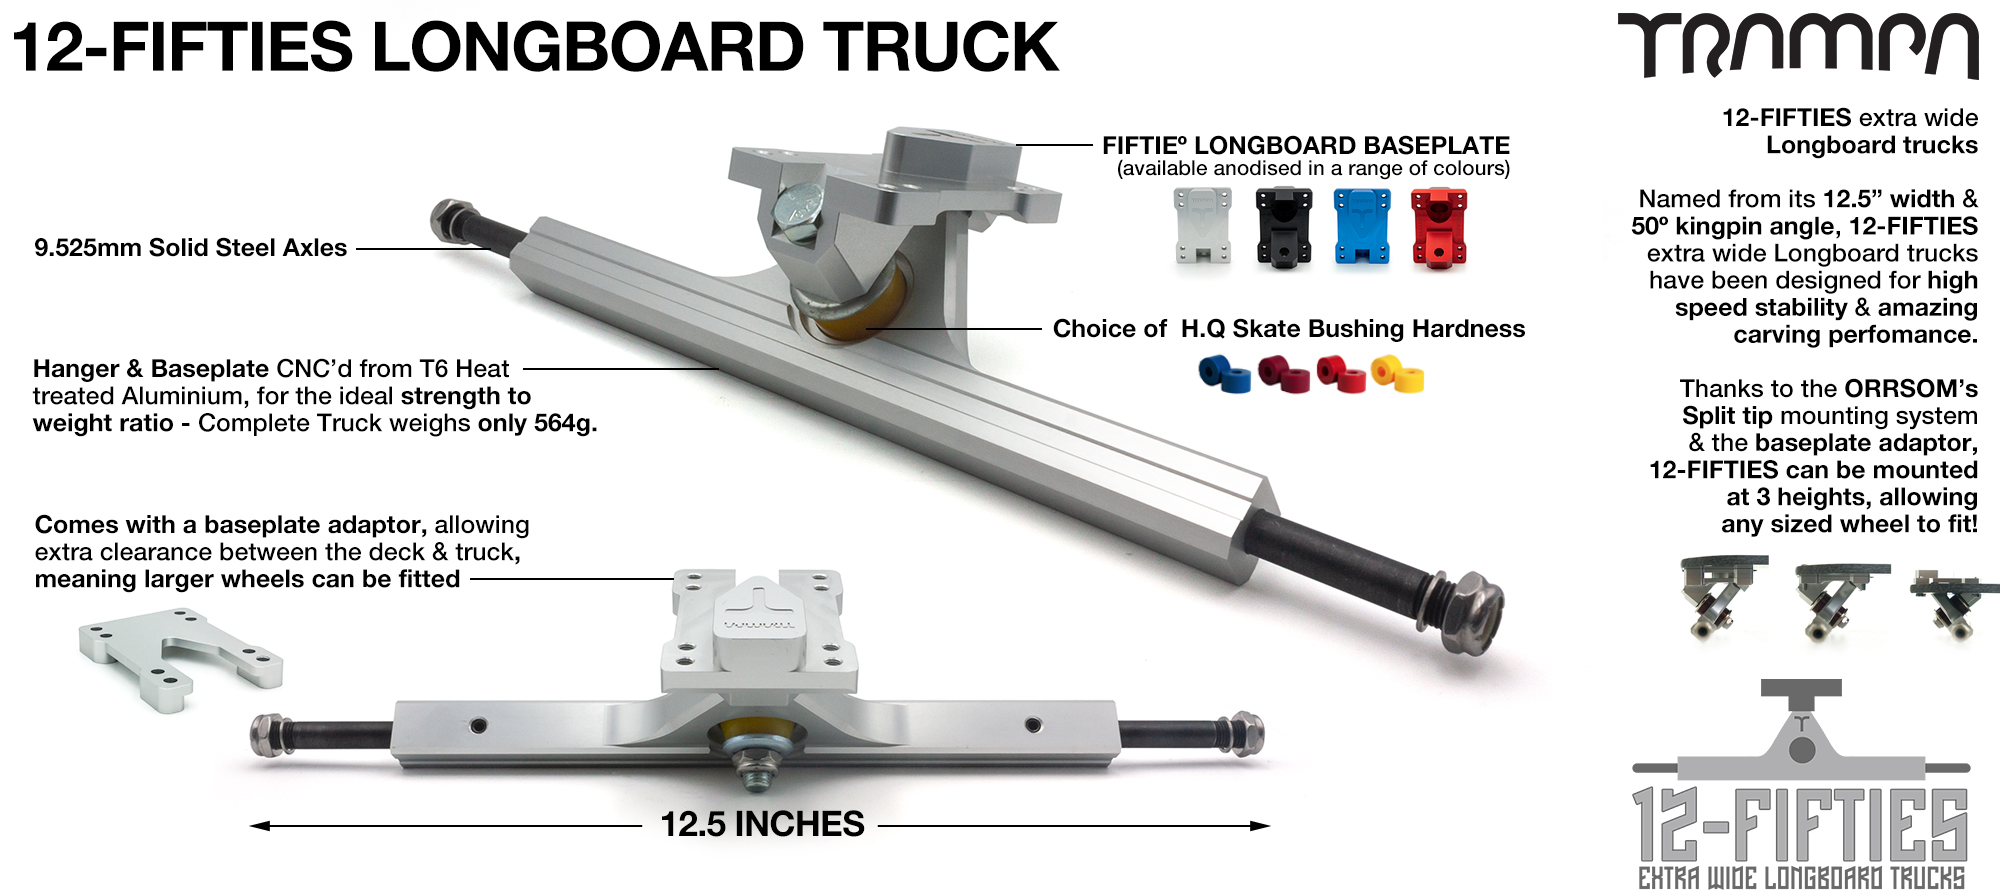 12Fifties - CNC Precision made Extra Wide All Terrain Longboard Truck